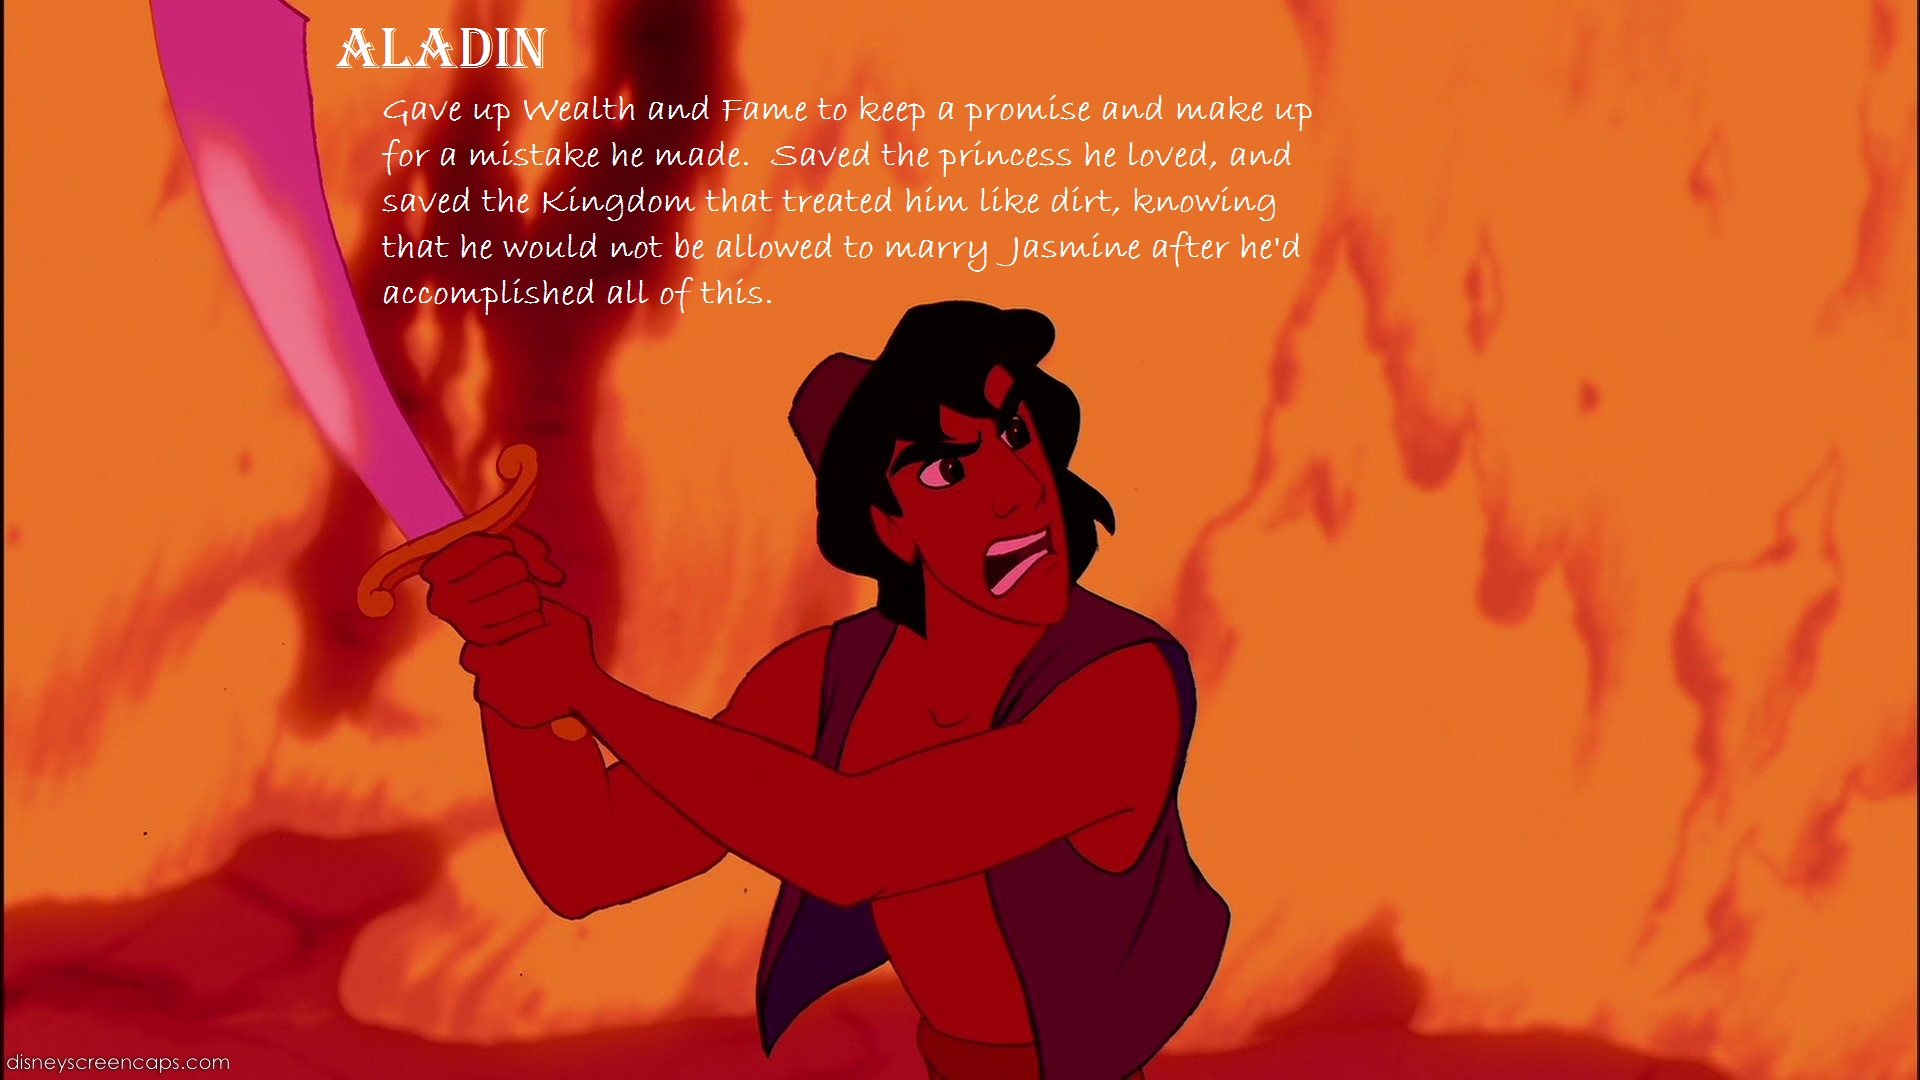 Disney Prince Bio Aladdin Know Your Meme Story Books Of Aladin Gave Up Wealth And Fame To Keep A Promise Make For Mistake